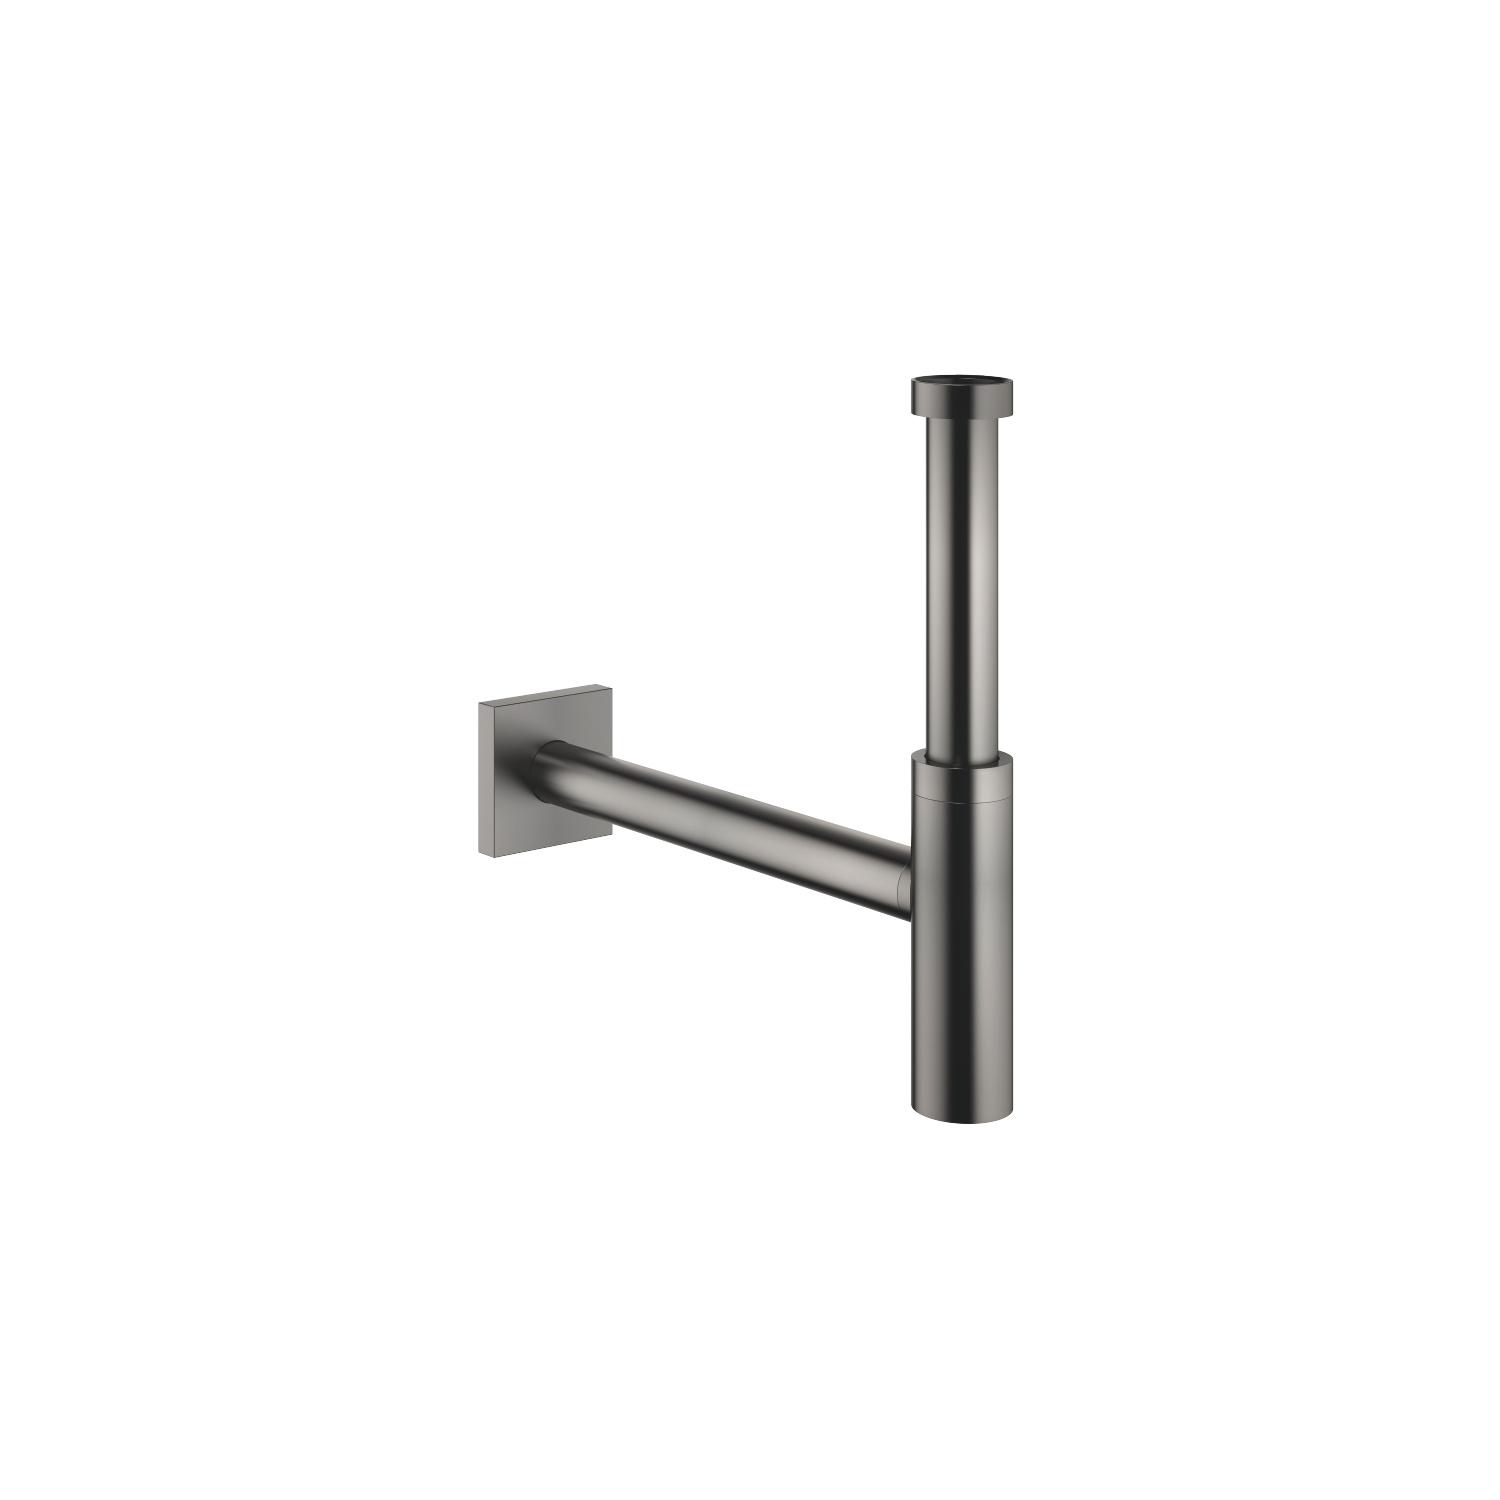 "Siphon for basin 1 1/4"" - Dark Platinum matt - 10 060 780-99"